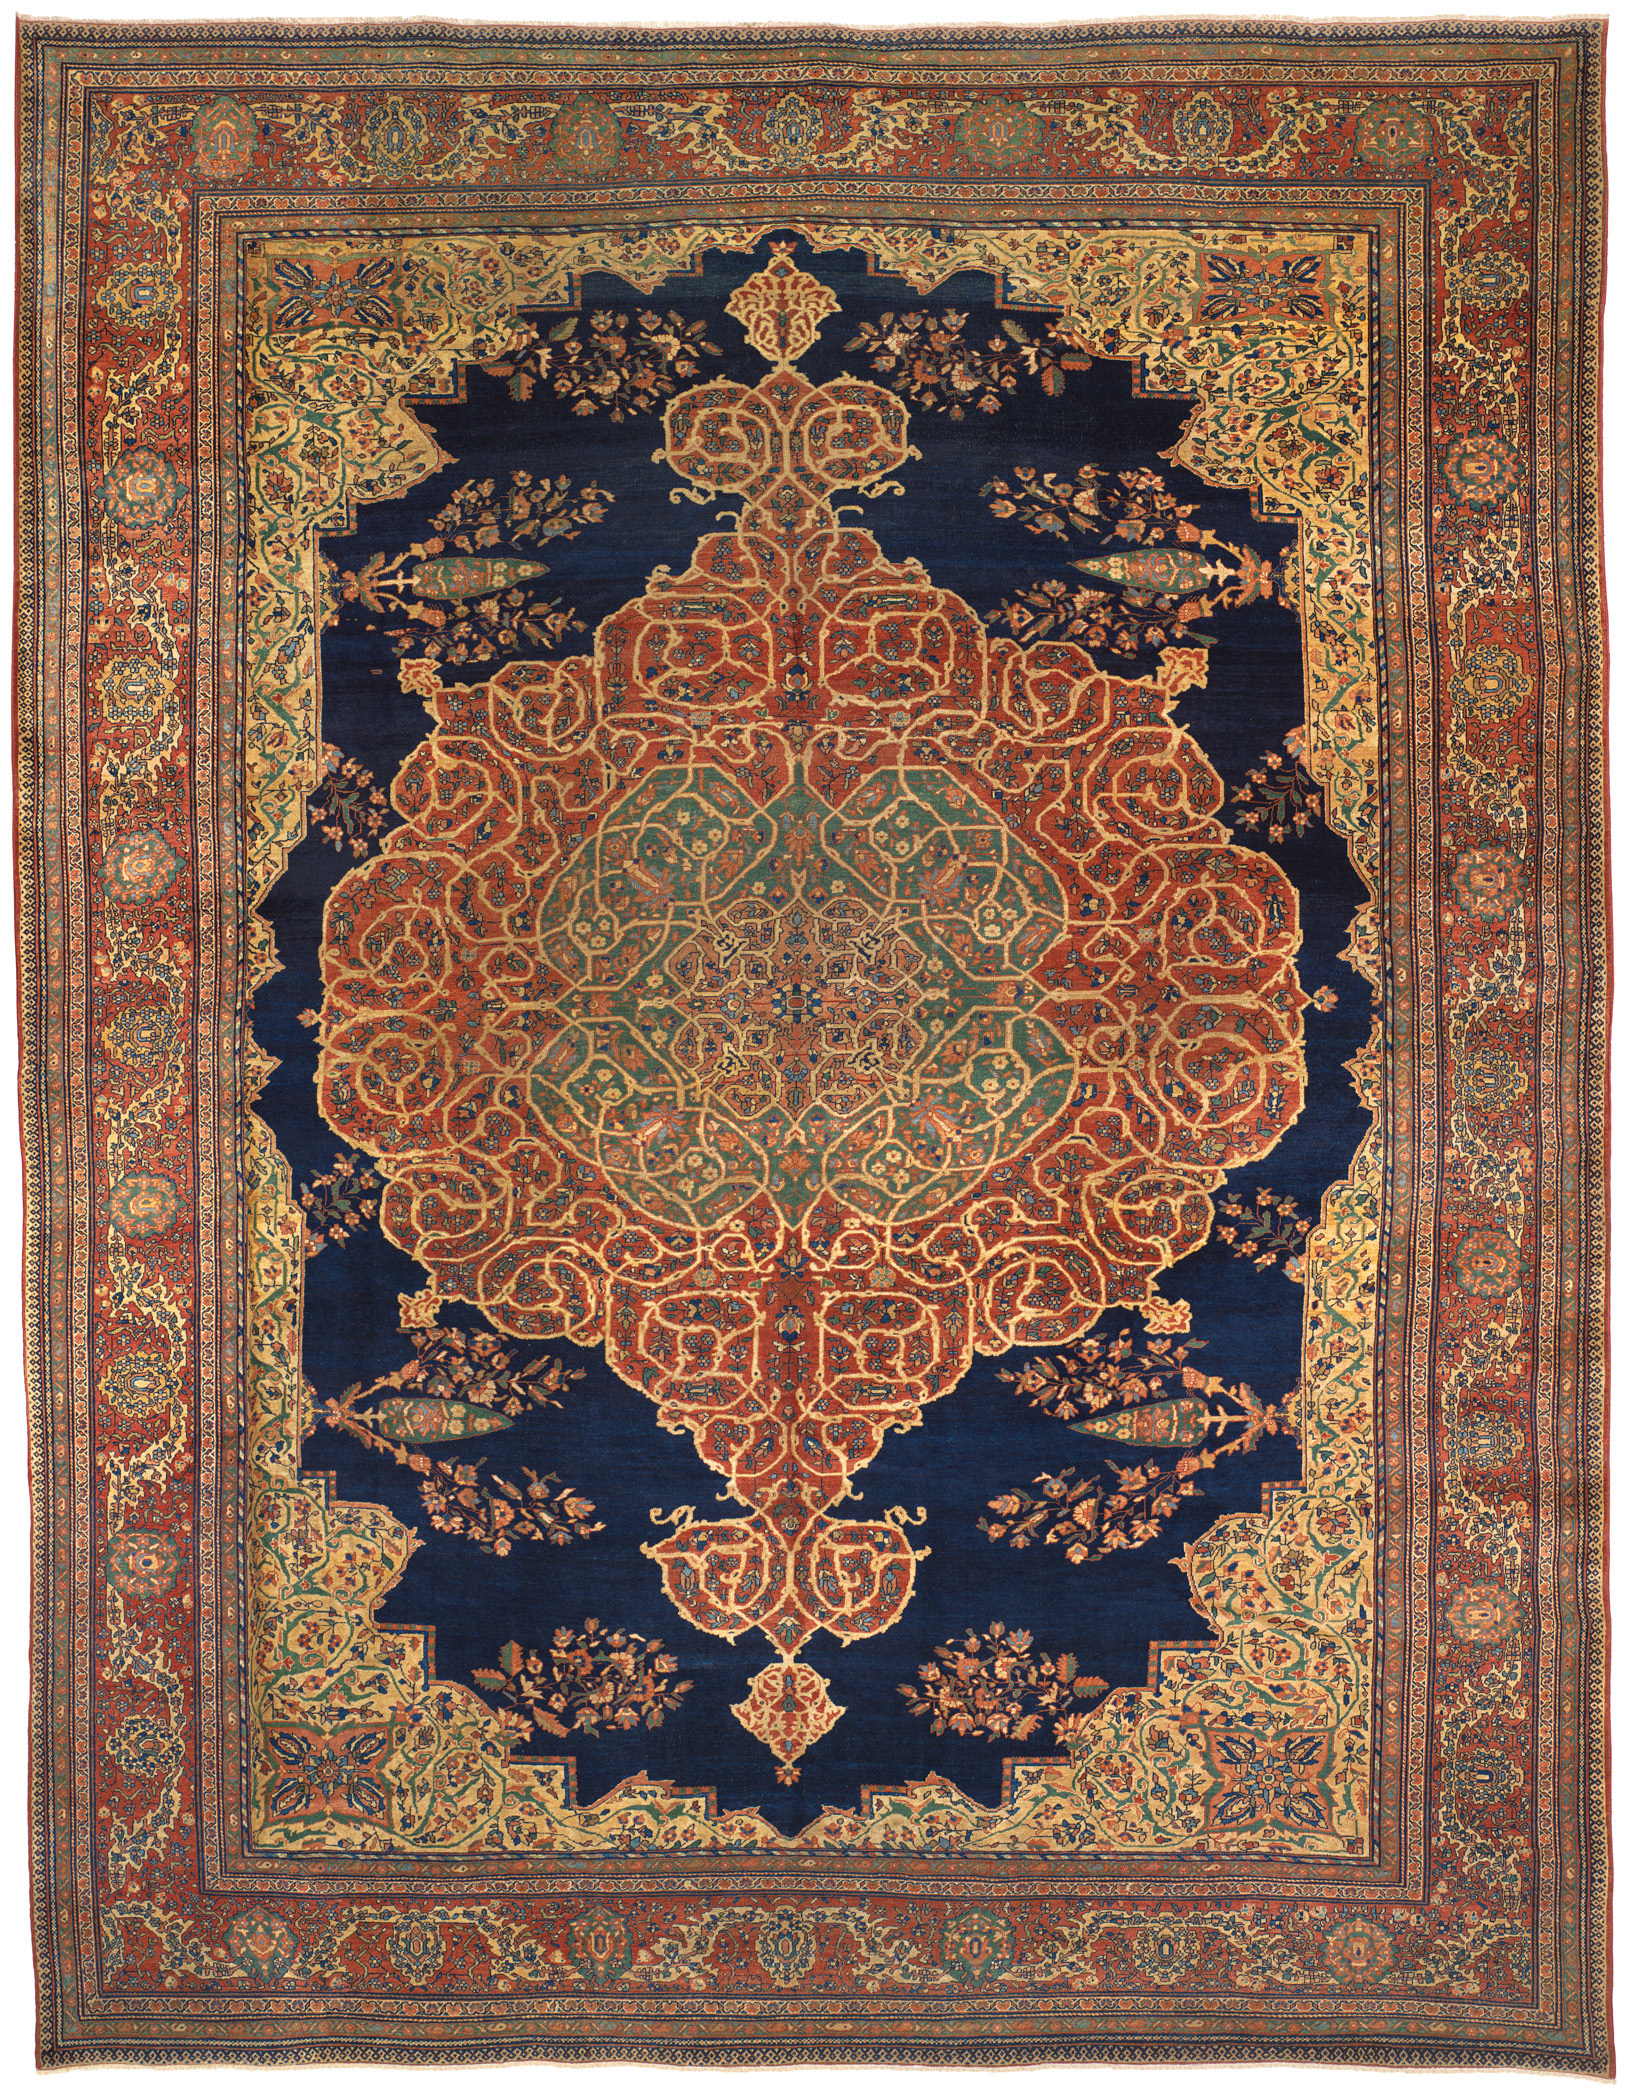 Claremont Rug Company Unveils Chaqua Collection With Major Exhibit Business Wire